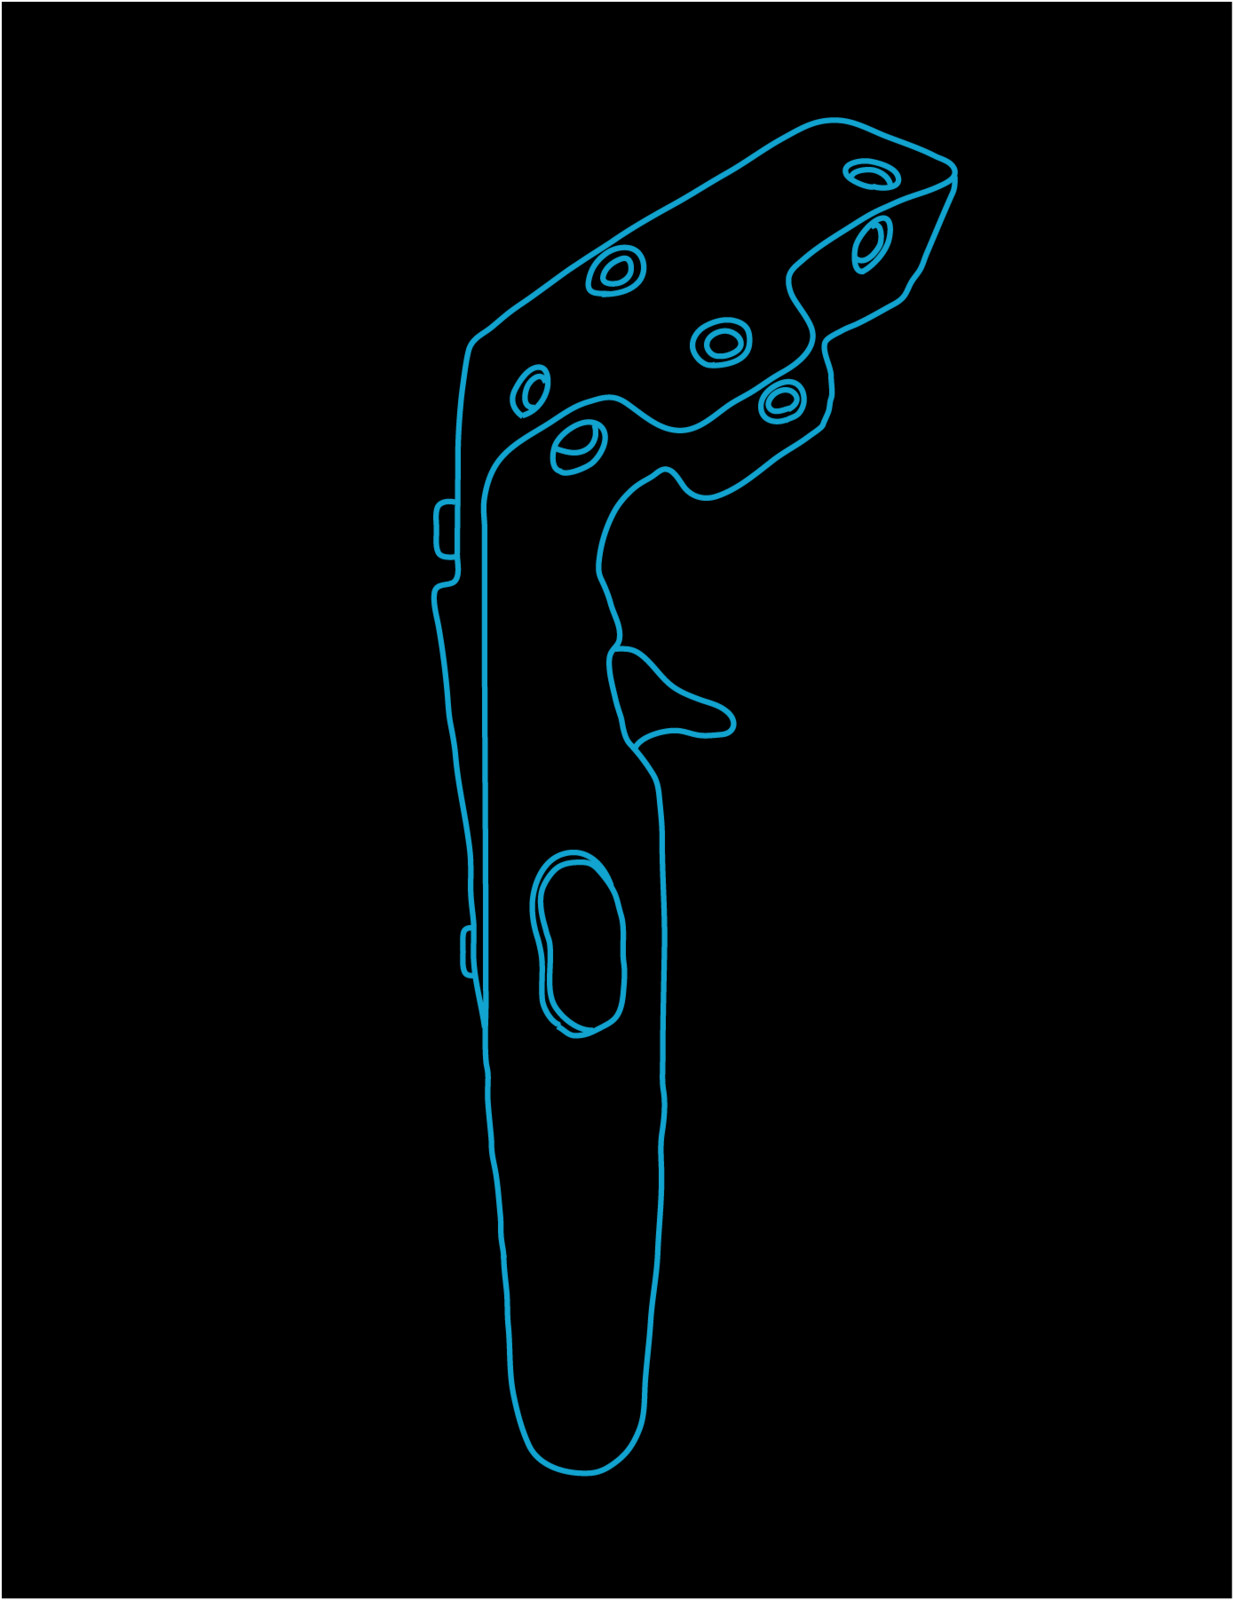 HTC Vive Controller Vector Art (Side) created in Adobe Illustrator